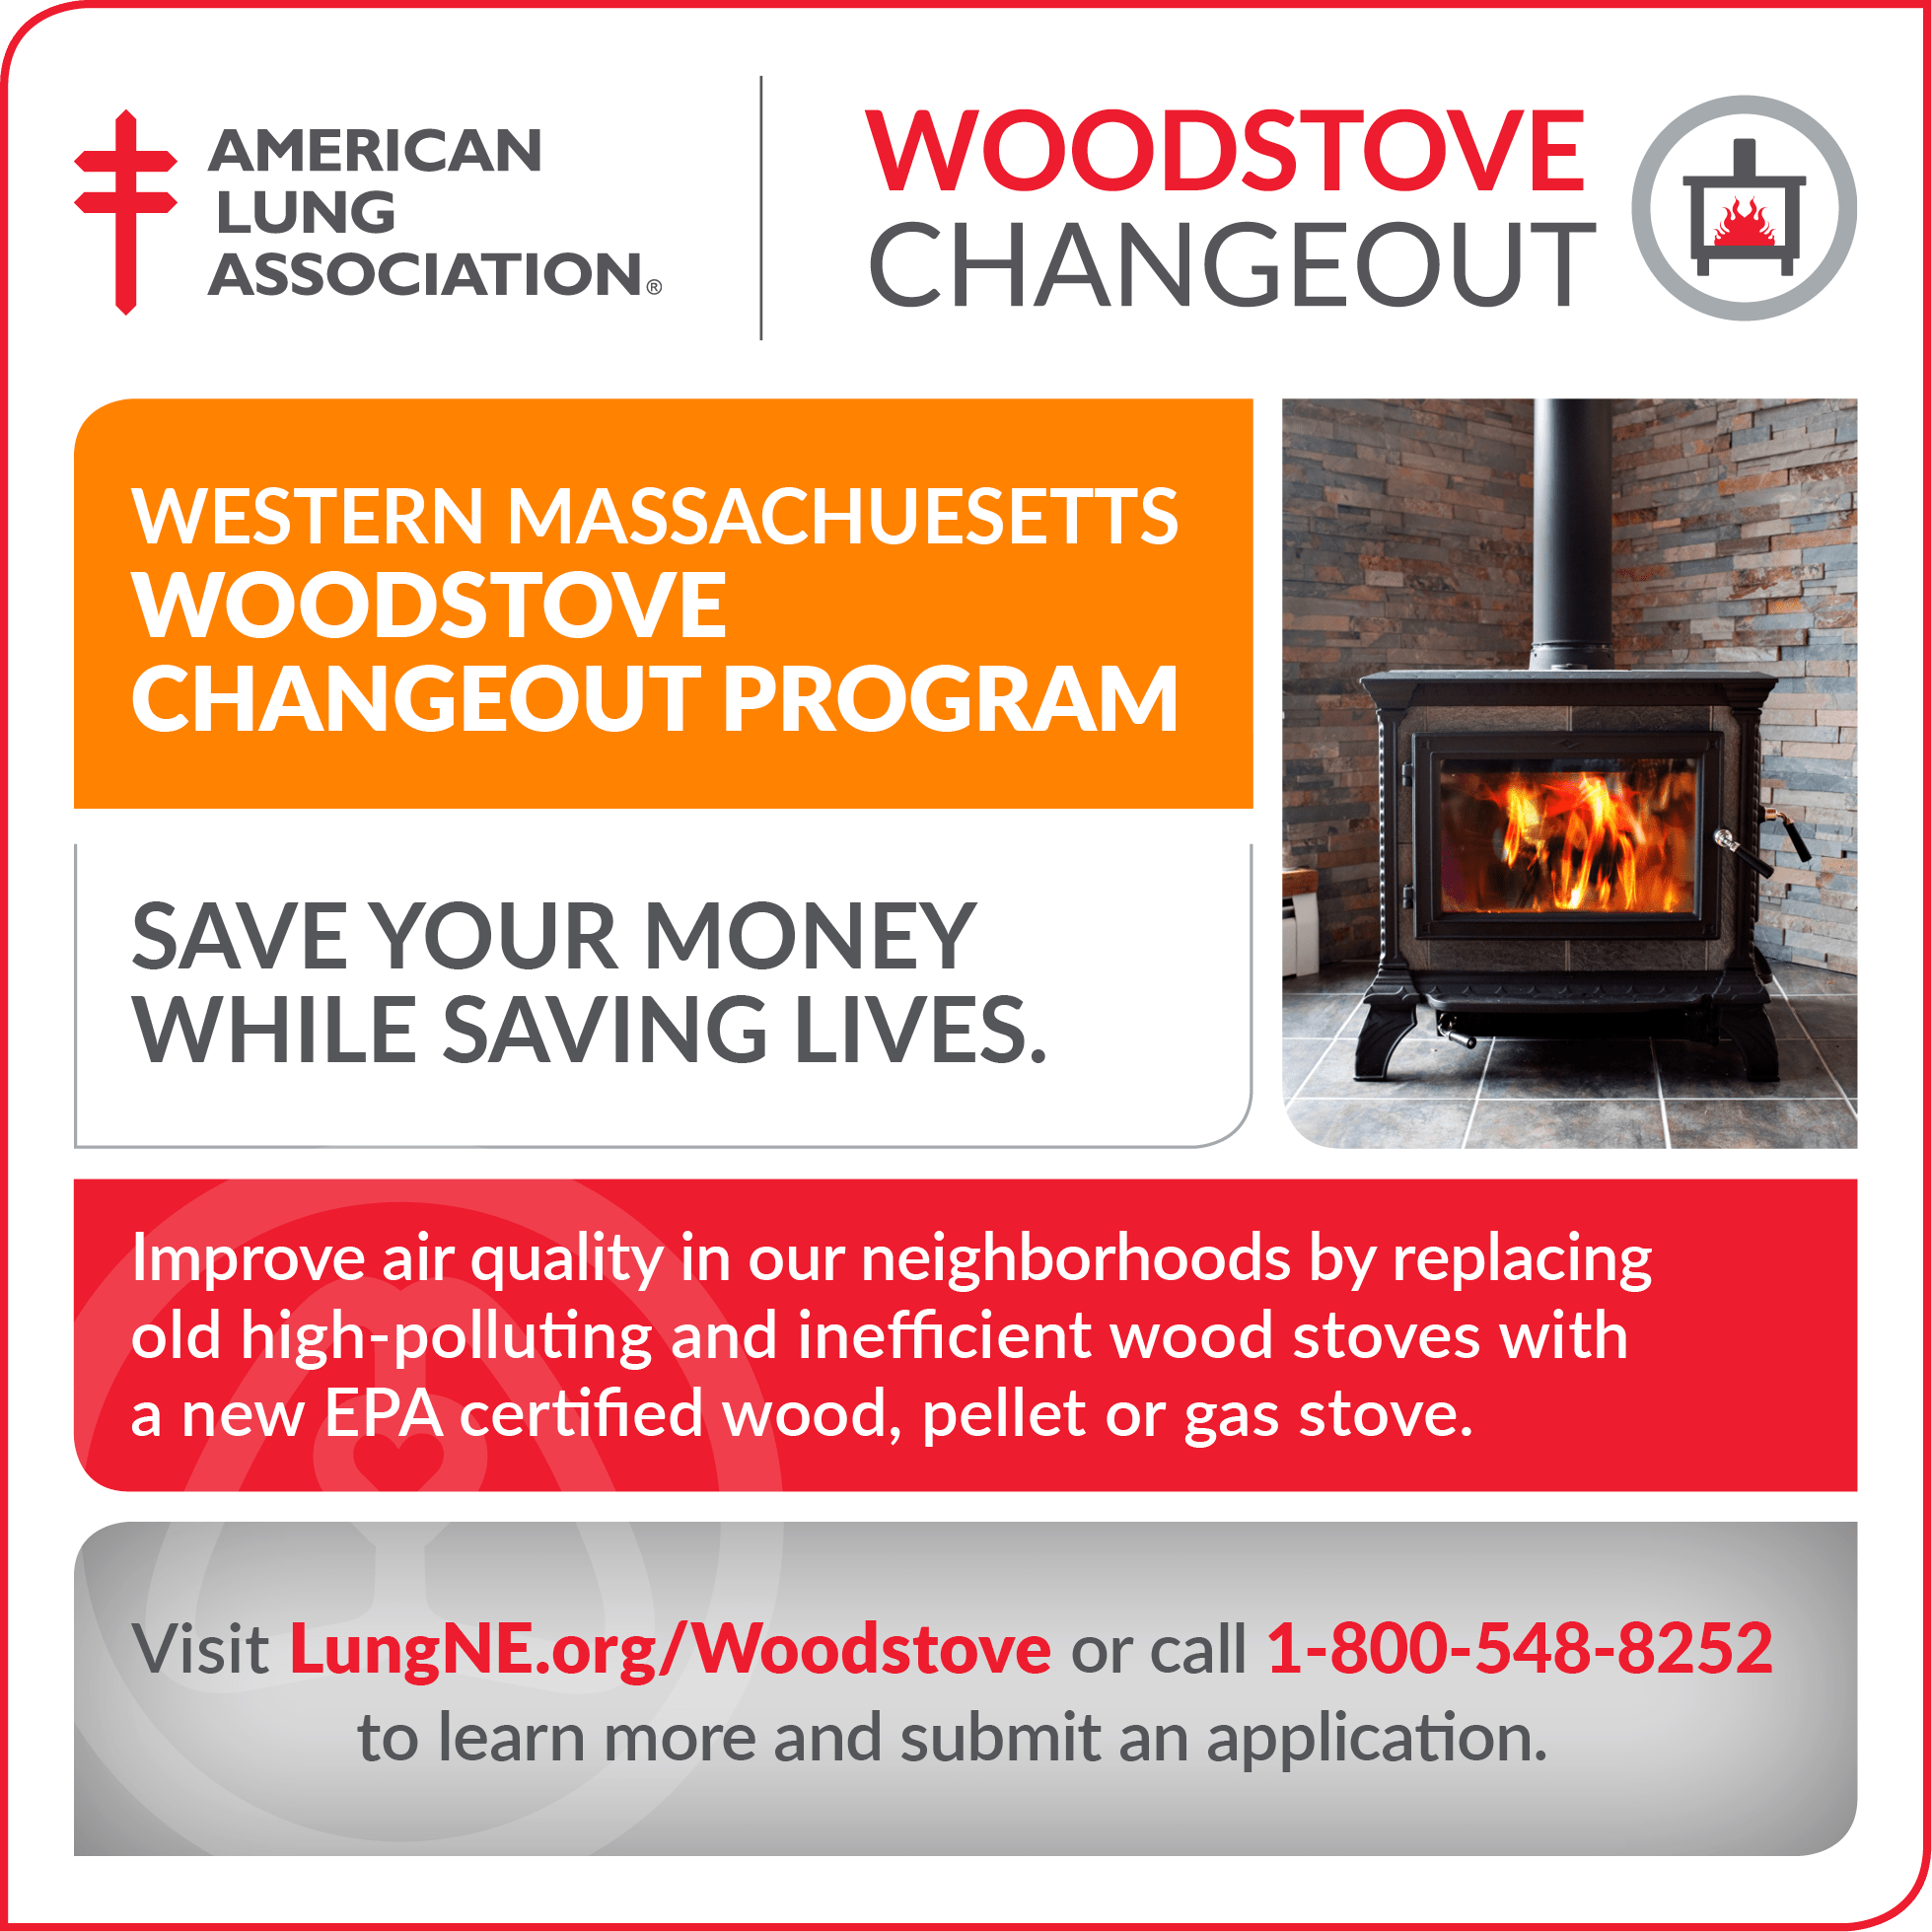 Woodstove Changeout Program Launches In Western Massachusetts